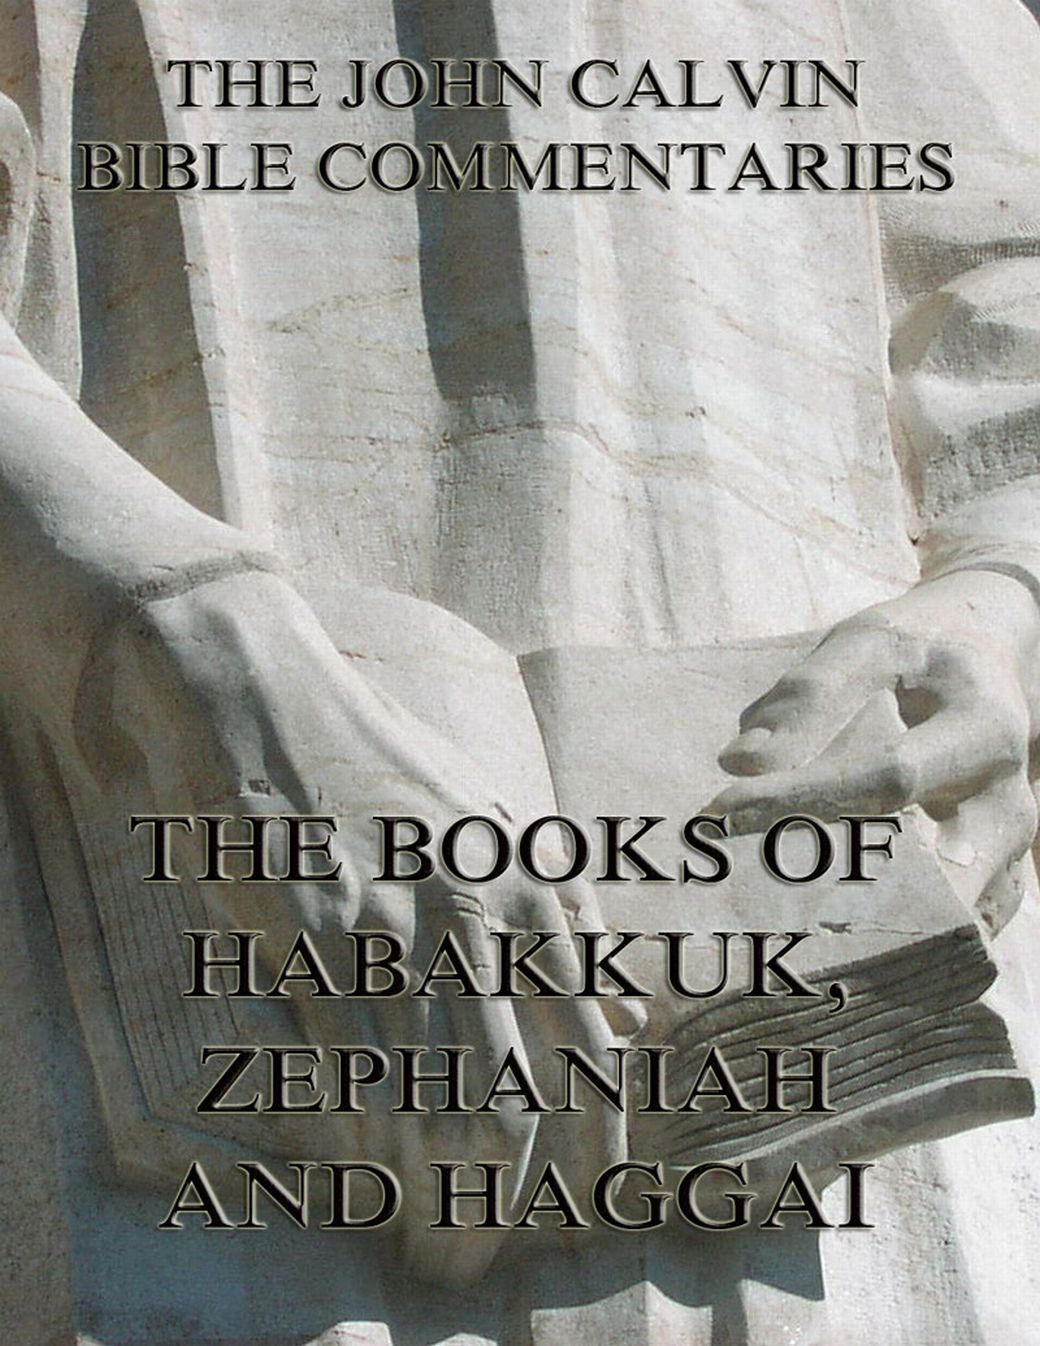 John Calvin John Calvin's Commentaries On Habakkuk, Zephaniah, Haggai han jin h six minor prophets through the centuries nahum habakkuk zephaniah haggai zechariah and malachi